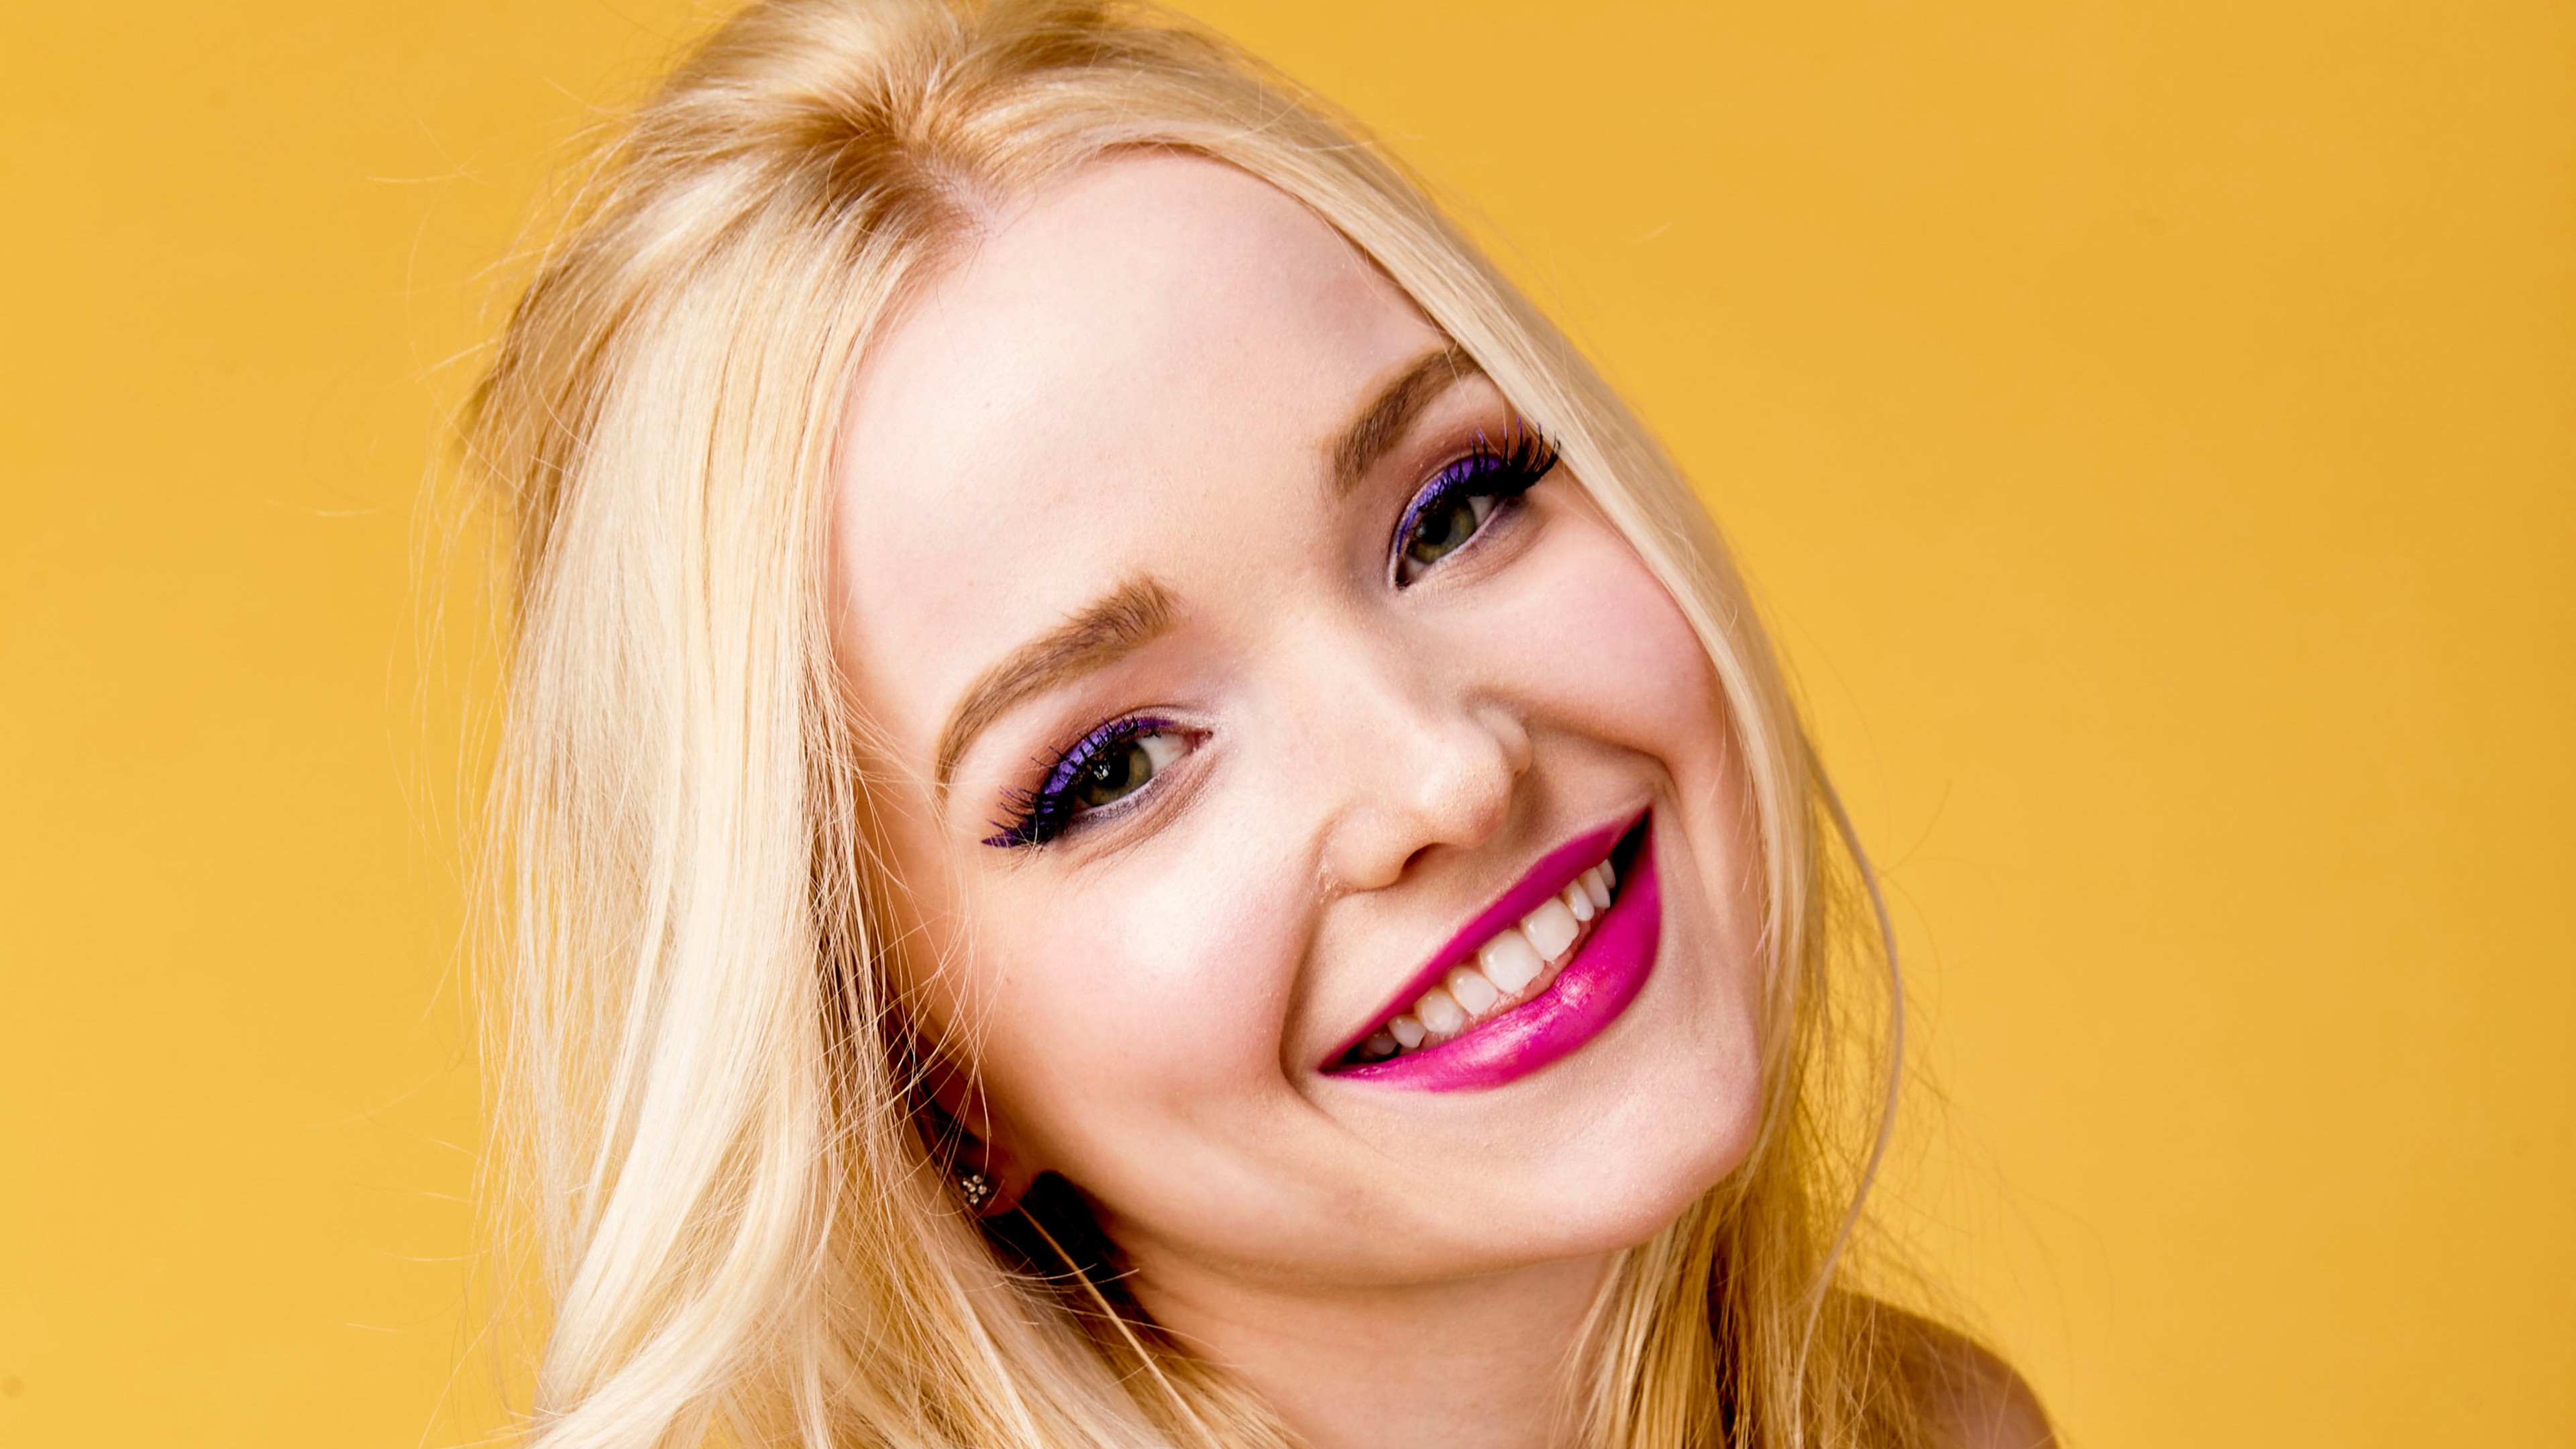 Cute Girly Wallpapers For Android Dove Cameron 4k Wallpapers Hd Wallpapers Id 23466